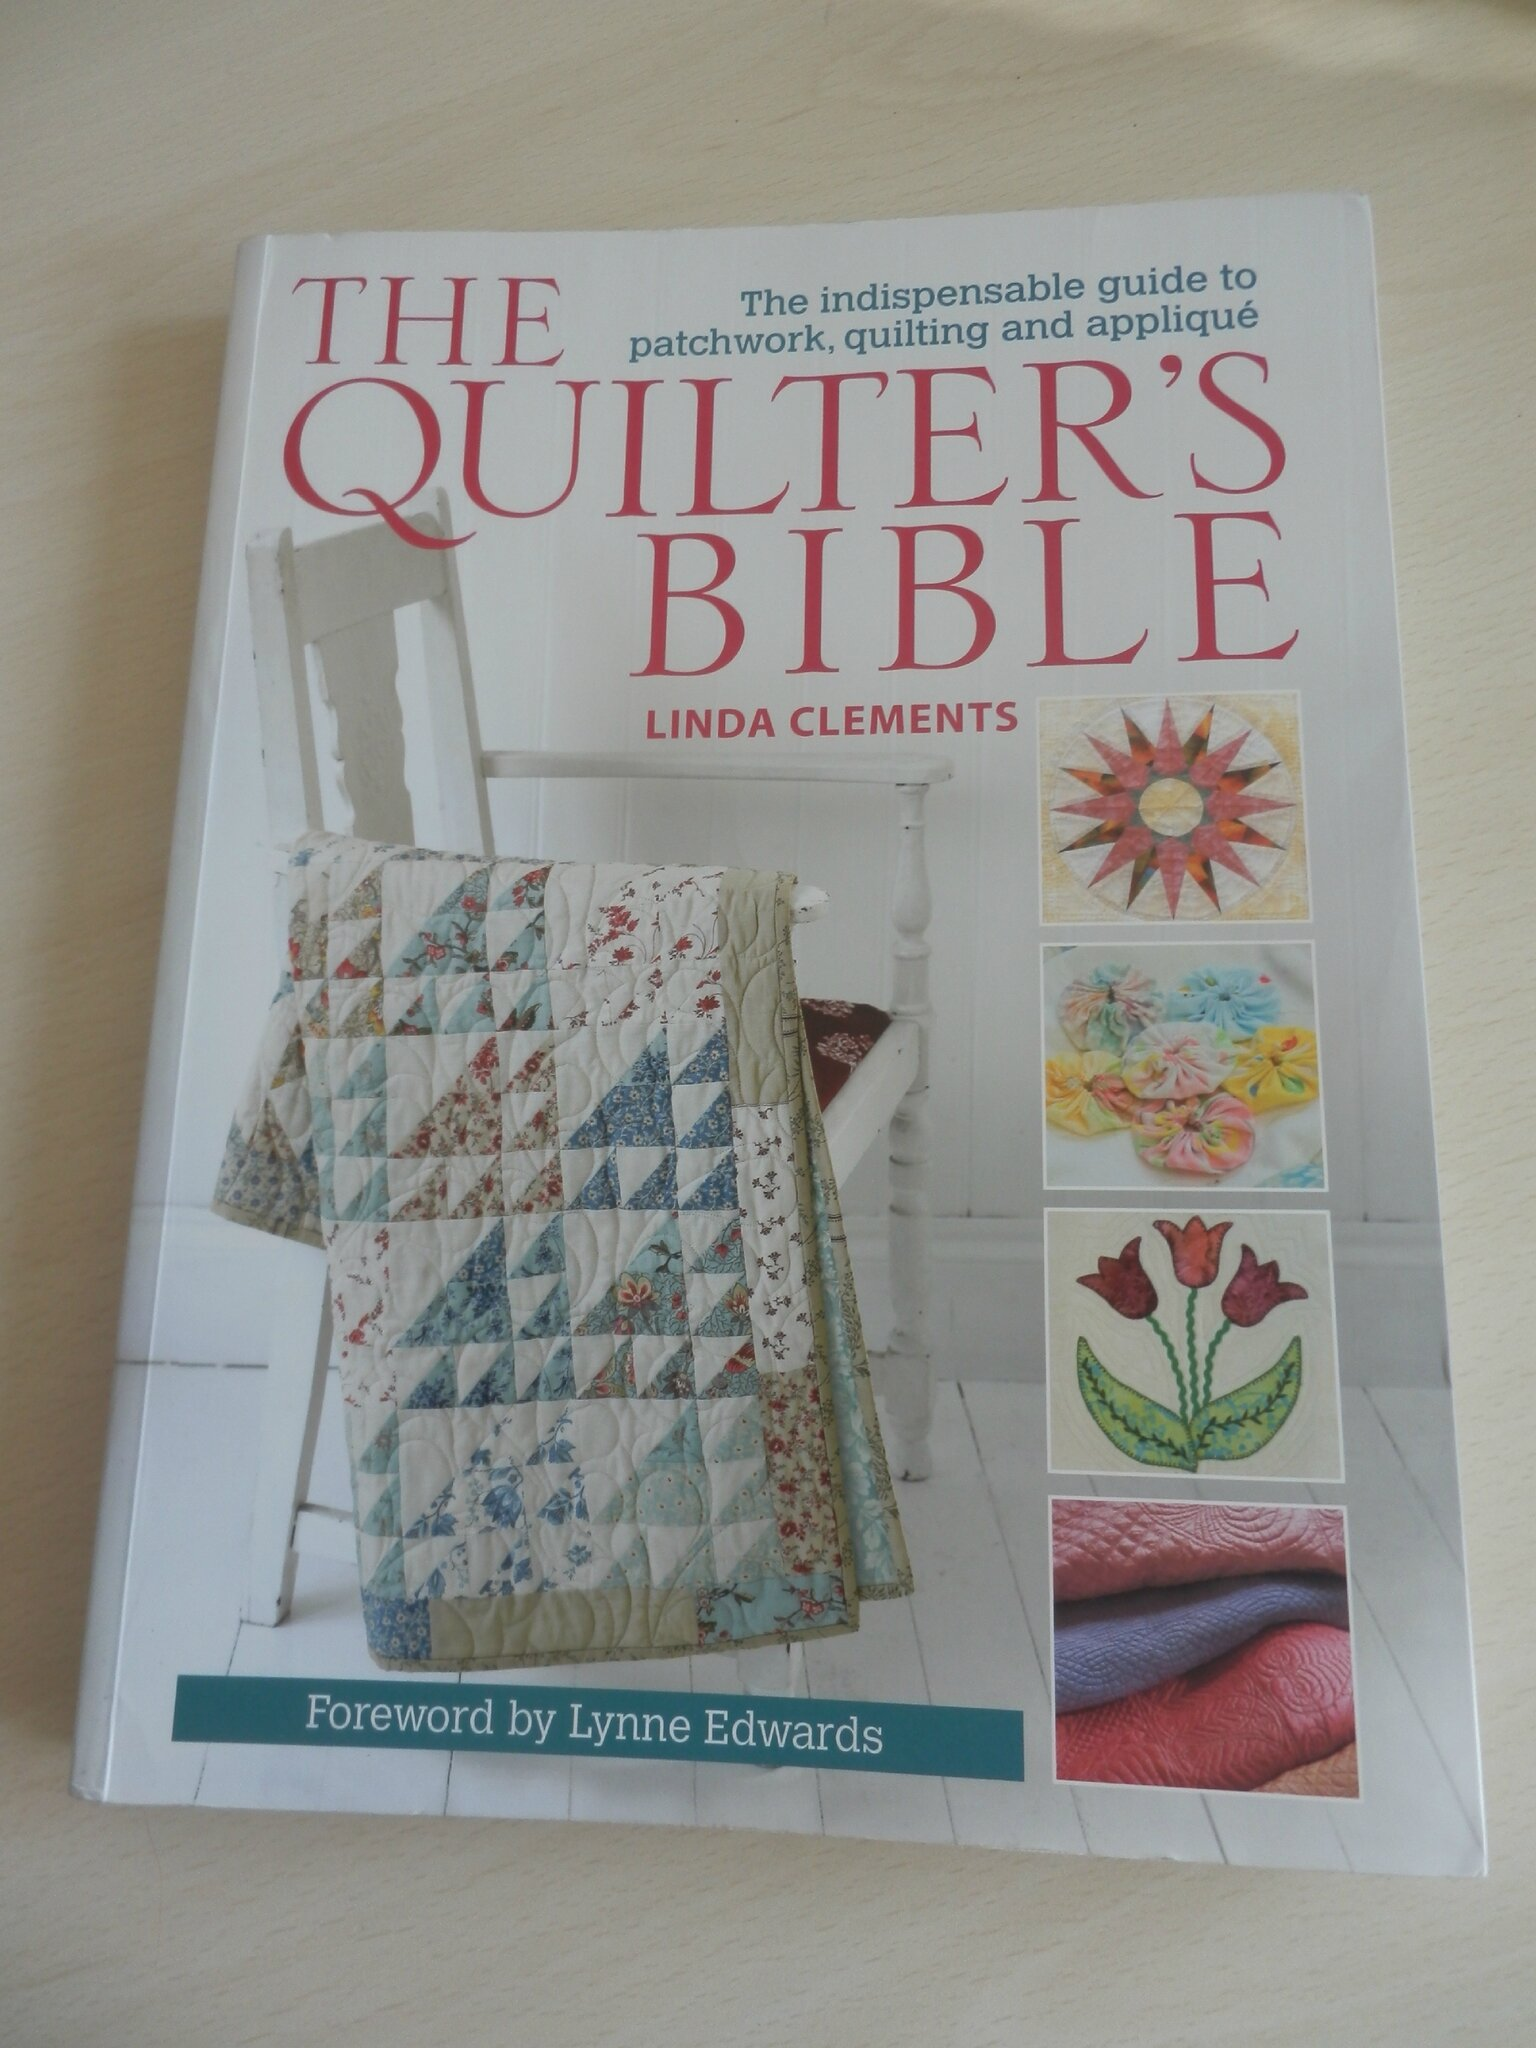 THE QUILTERS BIBLE 1